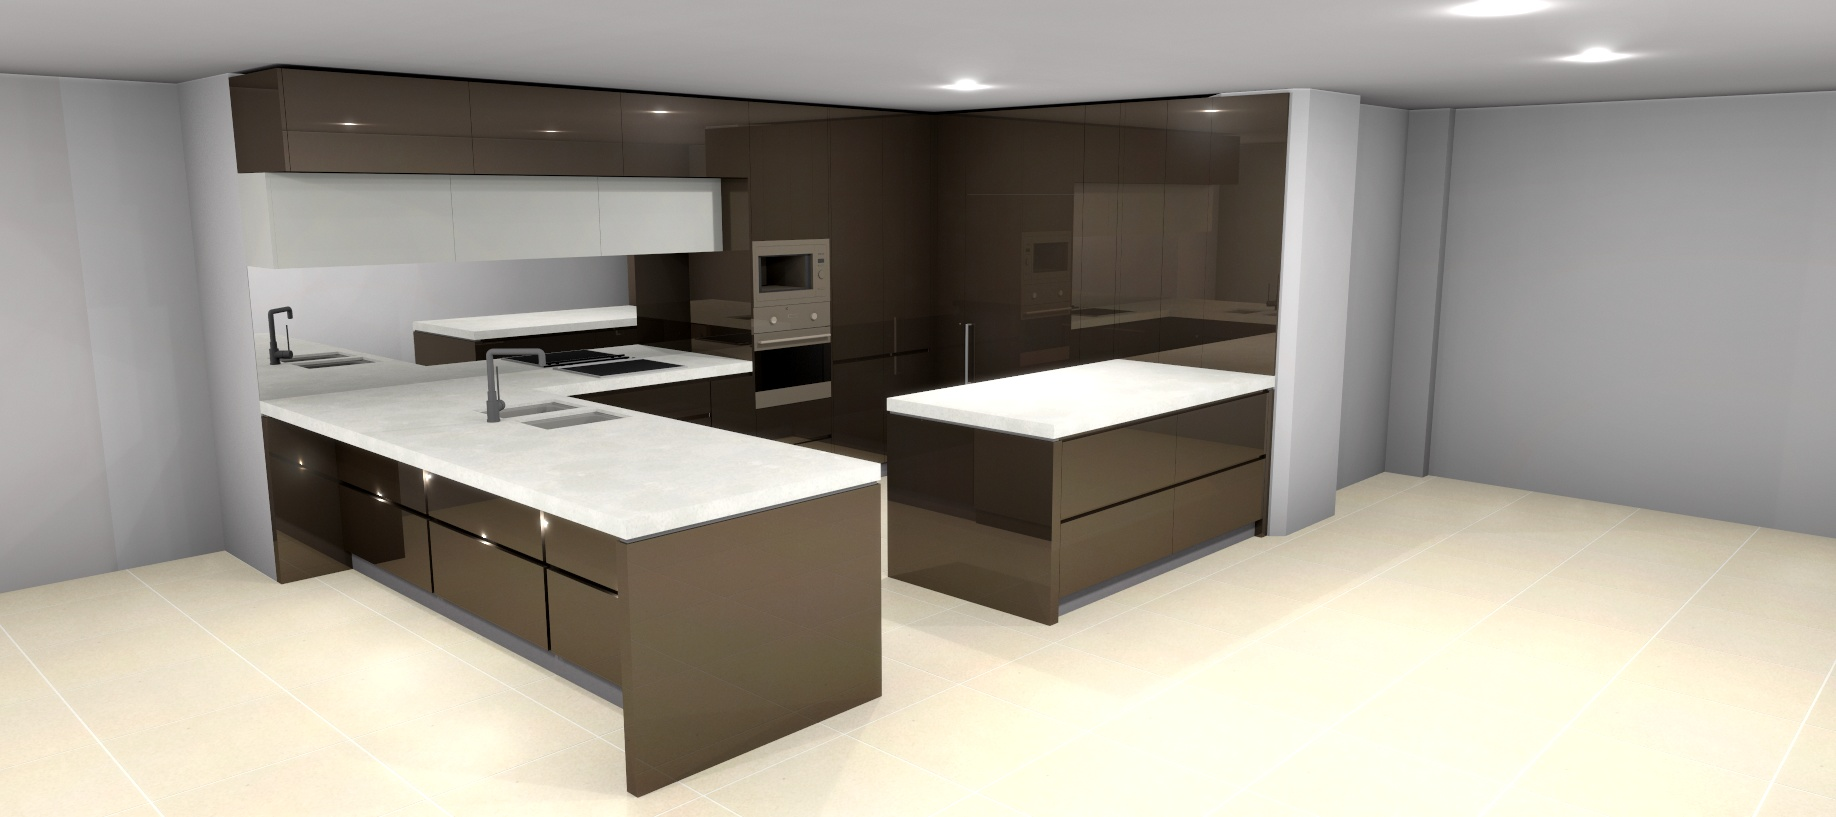 3D Design. Renovation